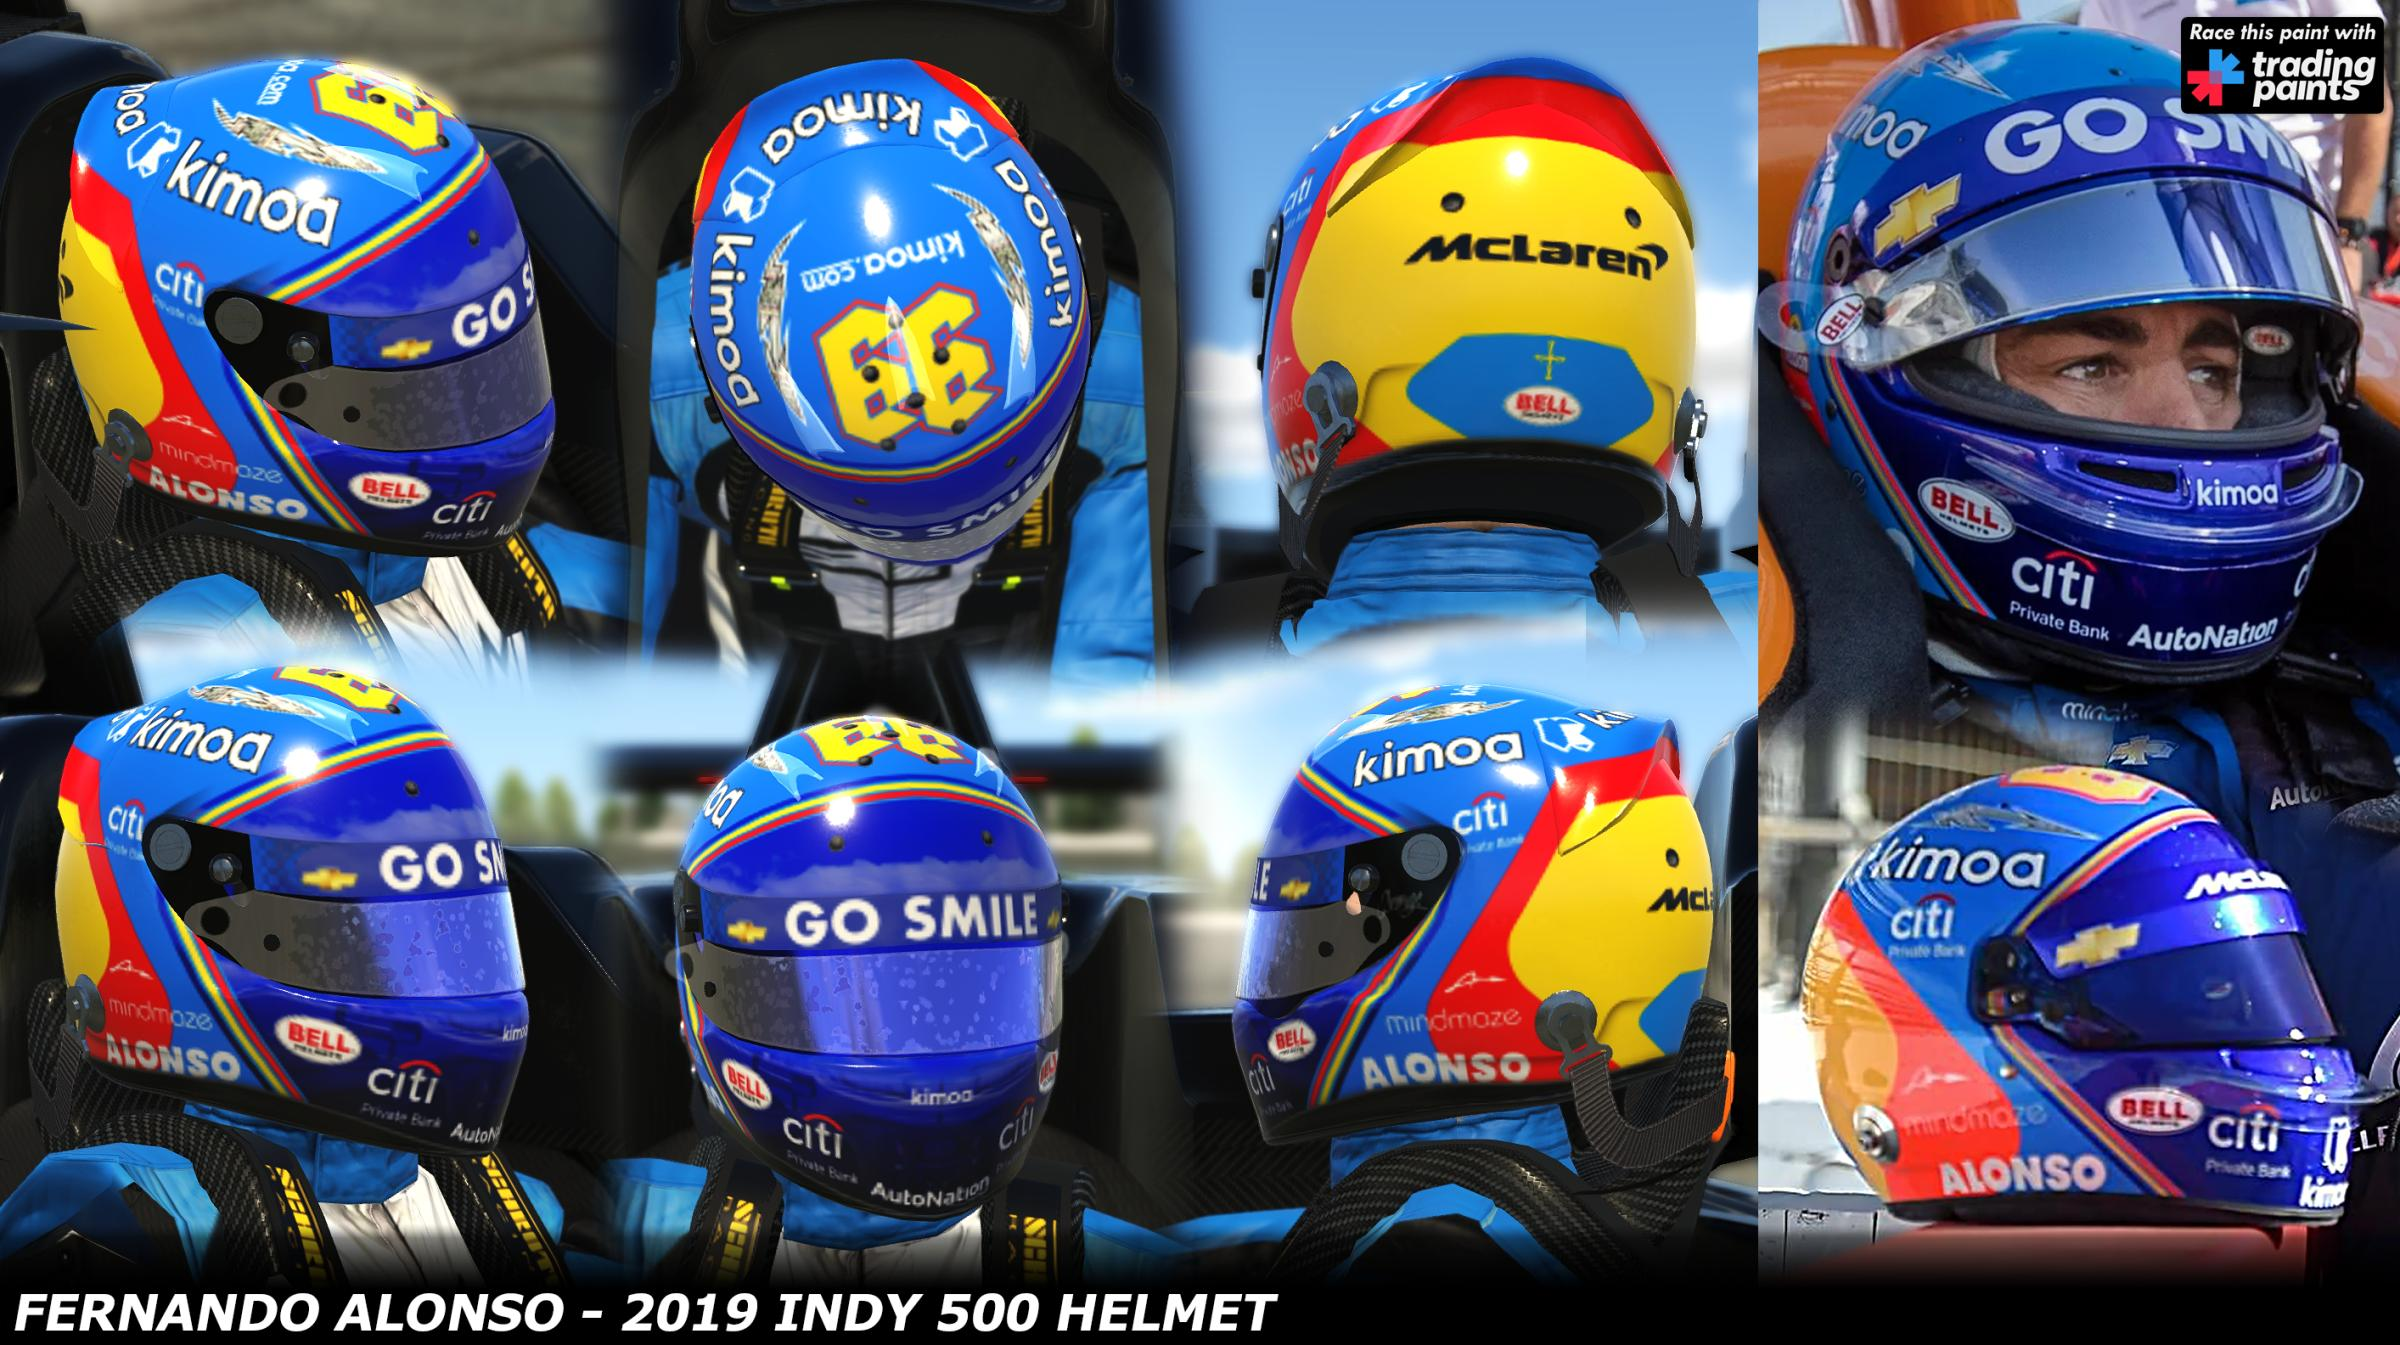 Preview of Fernando Alonso - Indy 500 2019 Helmet by George Simmons